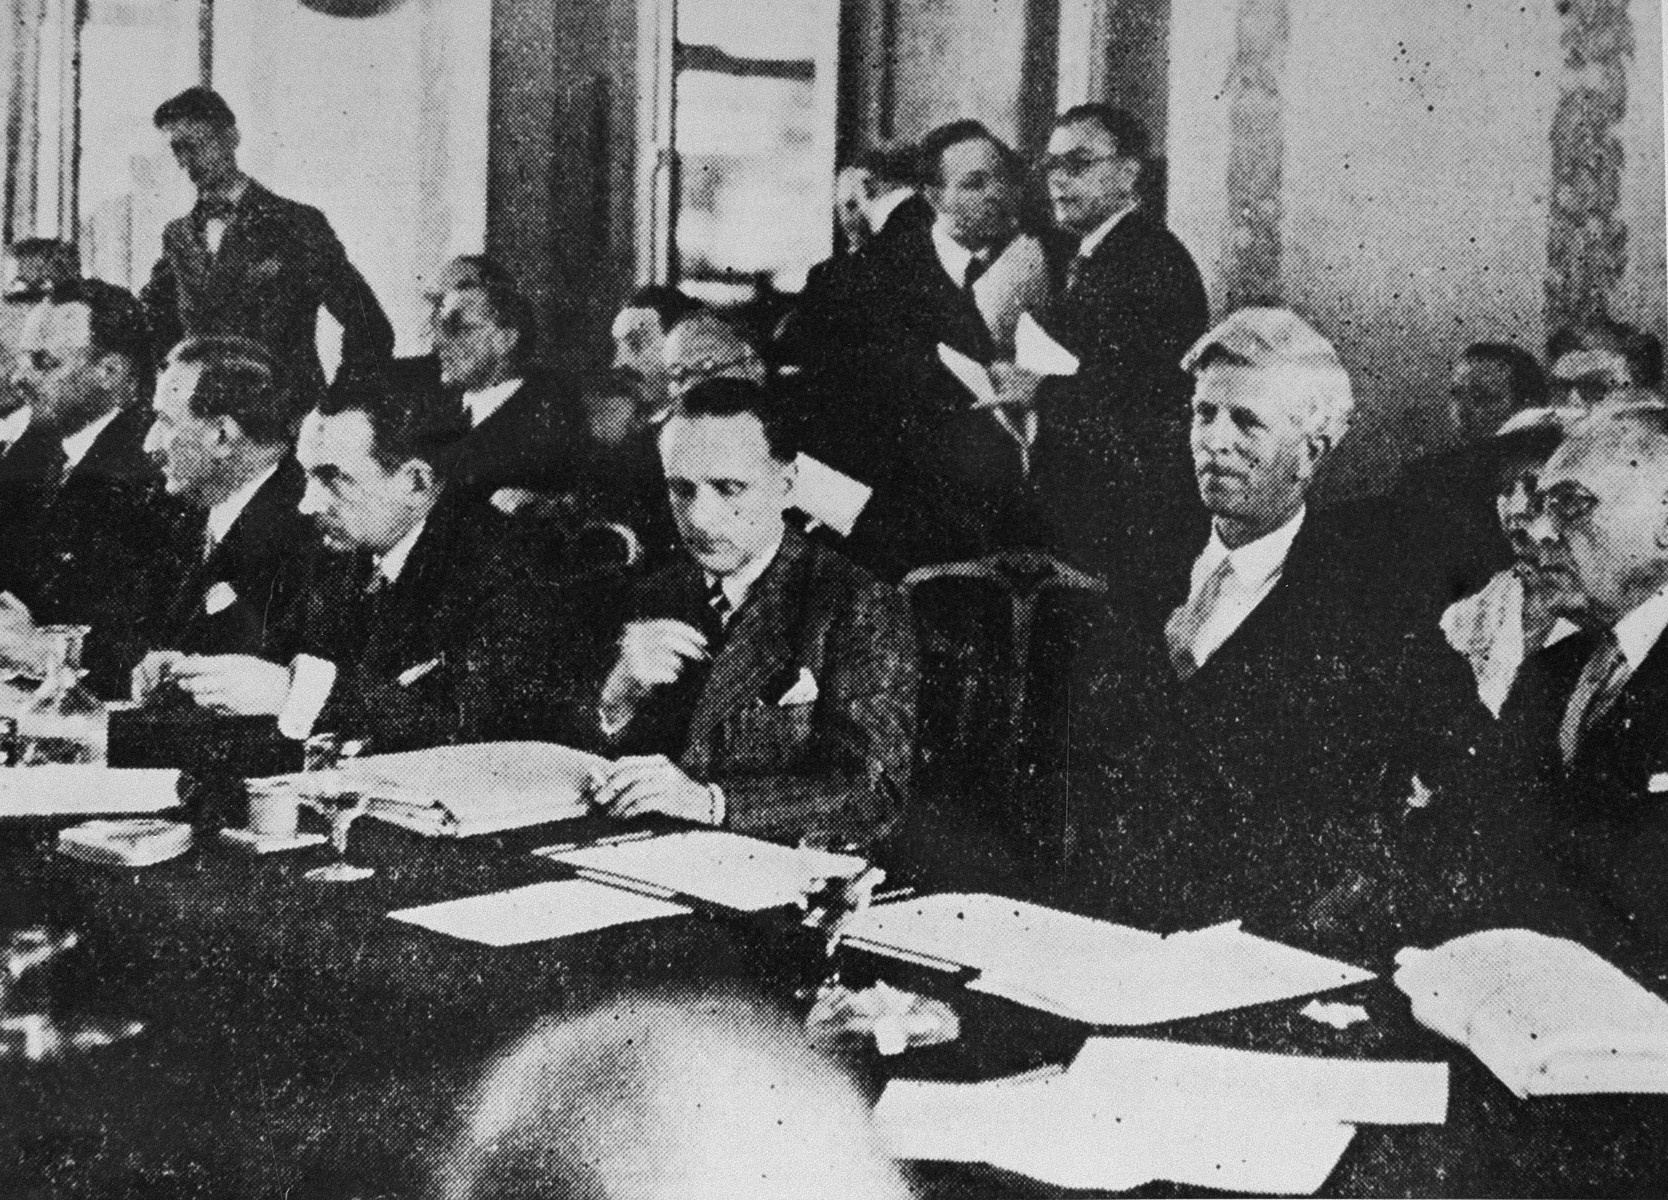 Delegates attend a session of the International Conference on Refugees at Evian-les-Bains.  Among those pictured are: Myron C. Taylor (right); James McDonald (second from the right); Norman Bentwich (left) in conversation with Henri Berenger.